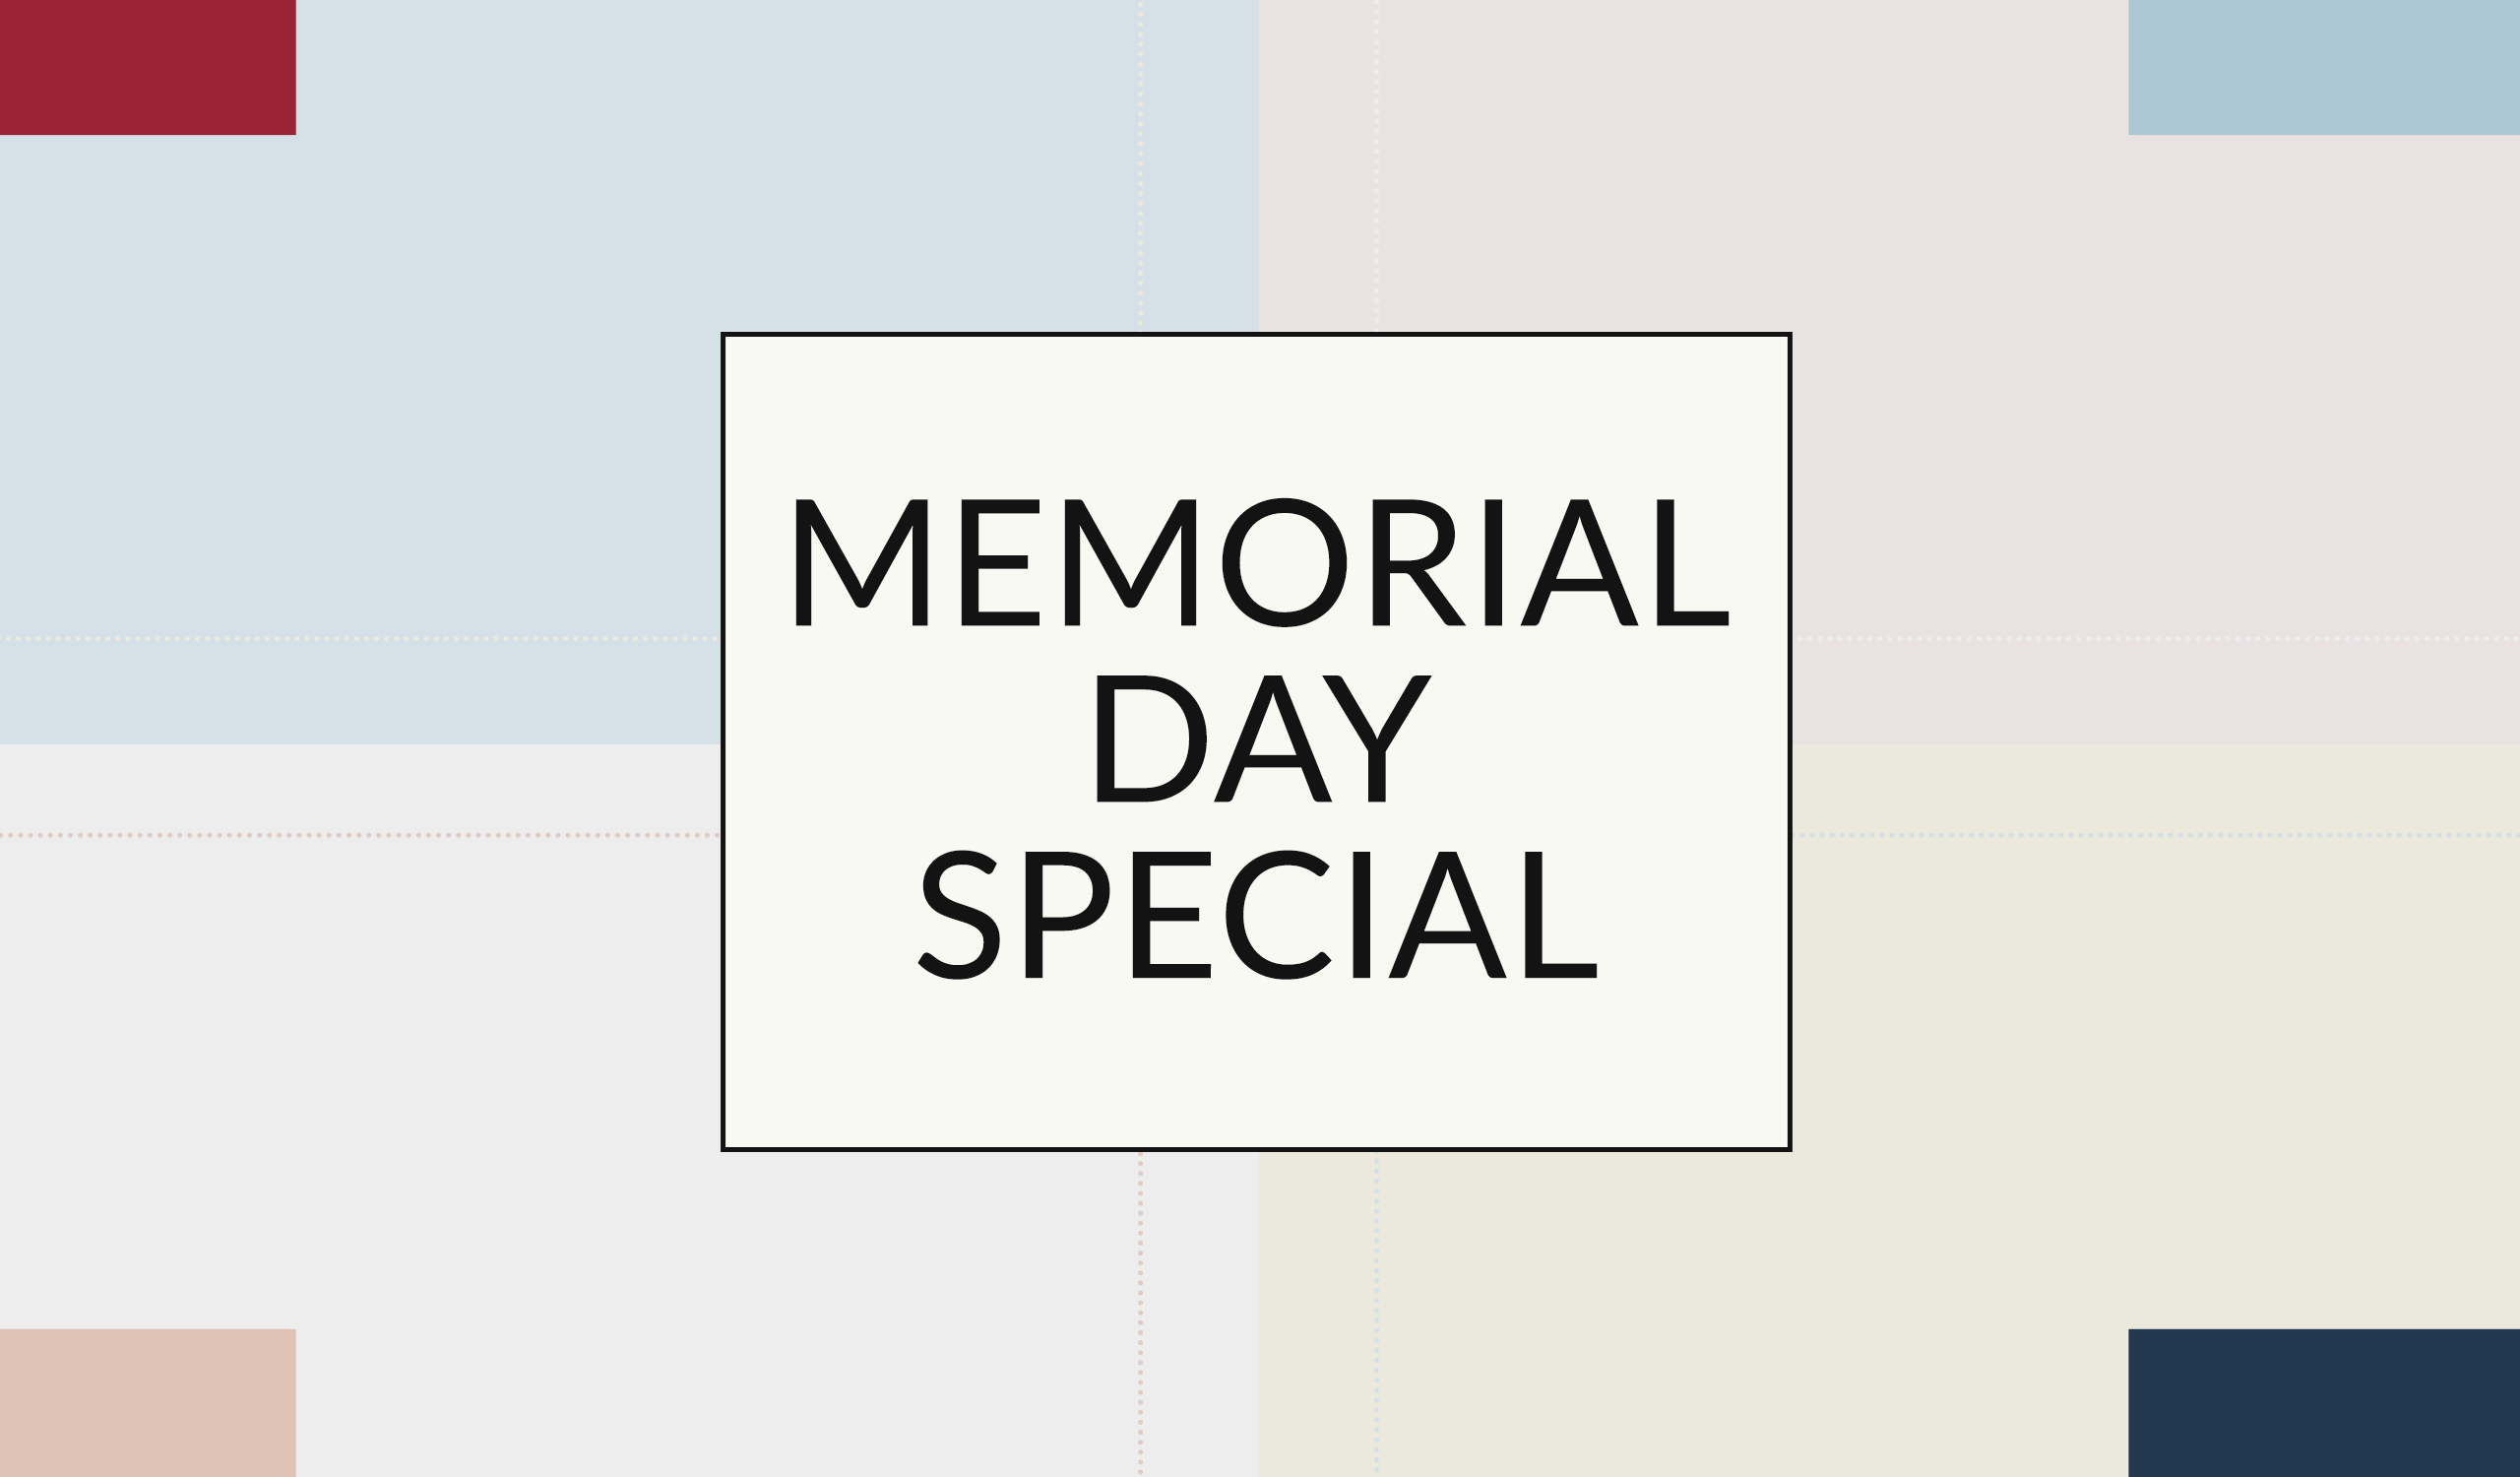 Memorial Day 2020 - Gift with Purchase Offer